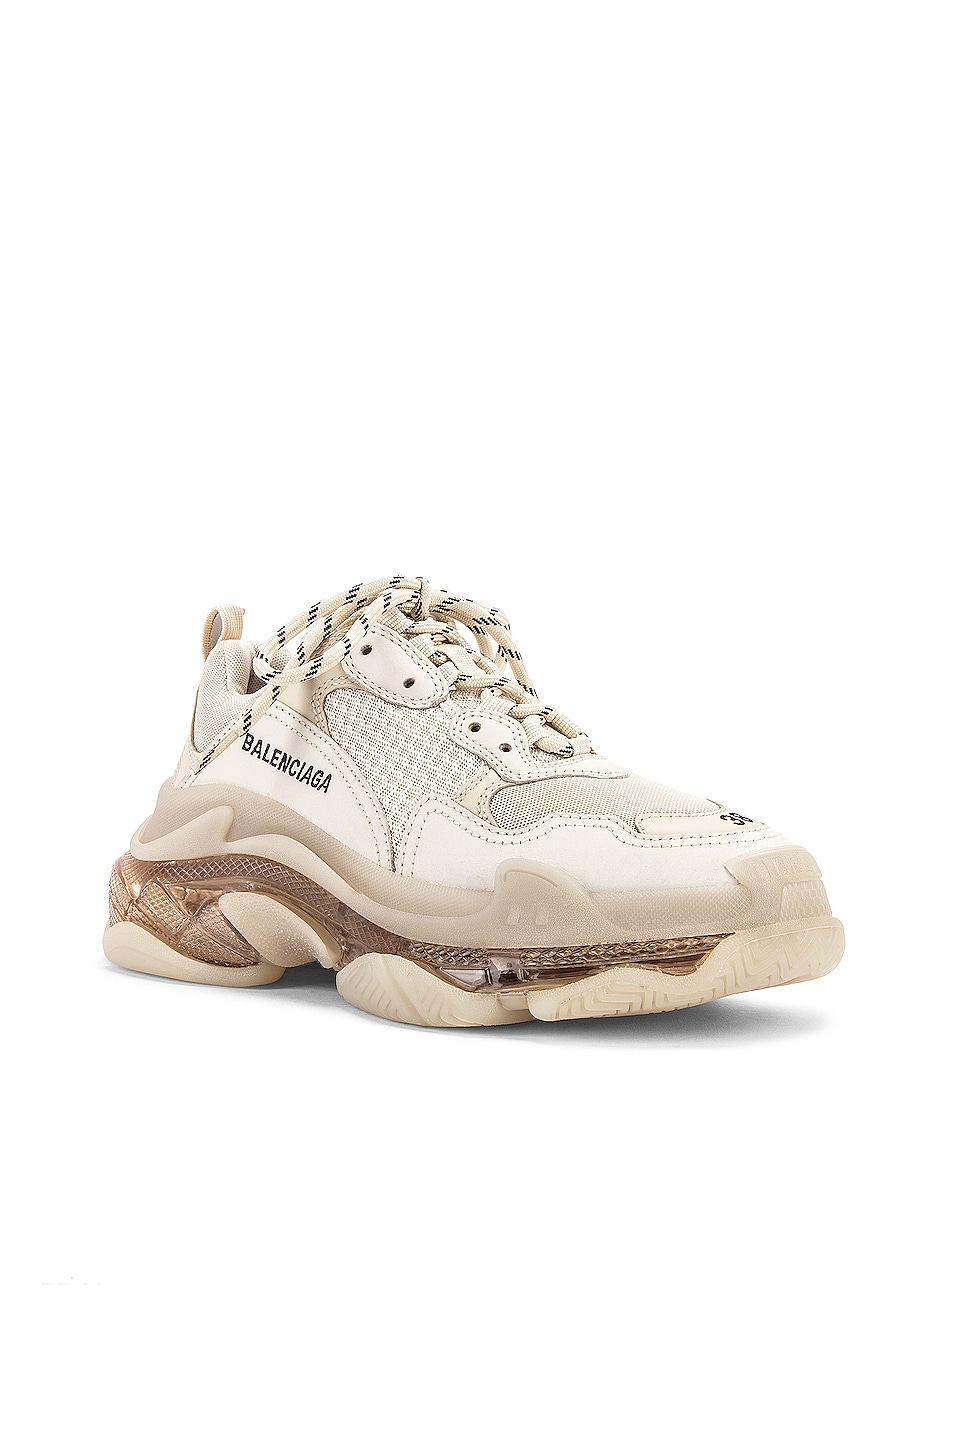 Image 2 of Balenciaga Triple S Sneakers in Off White